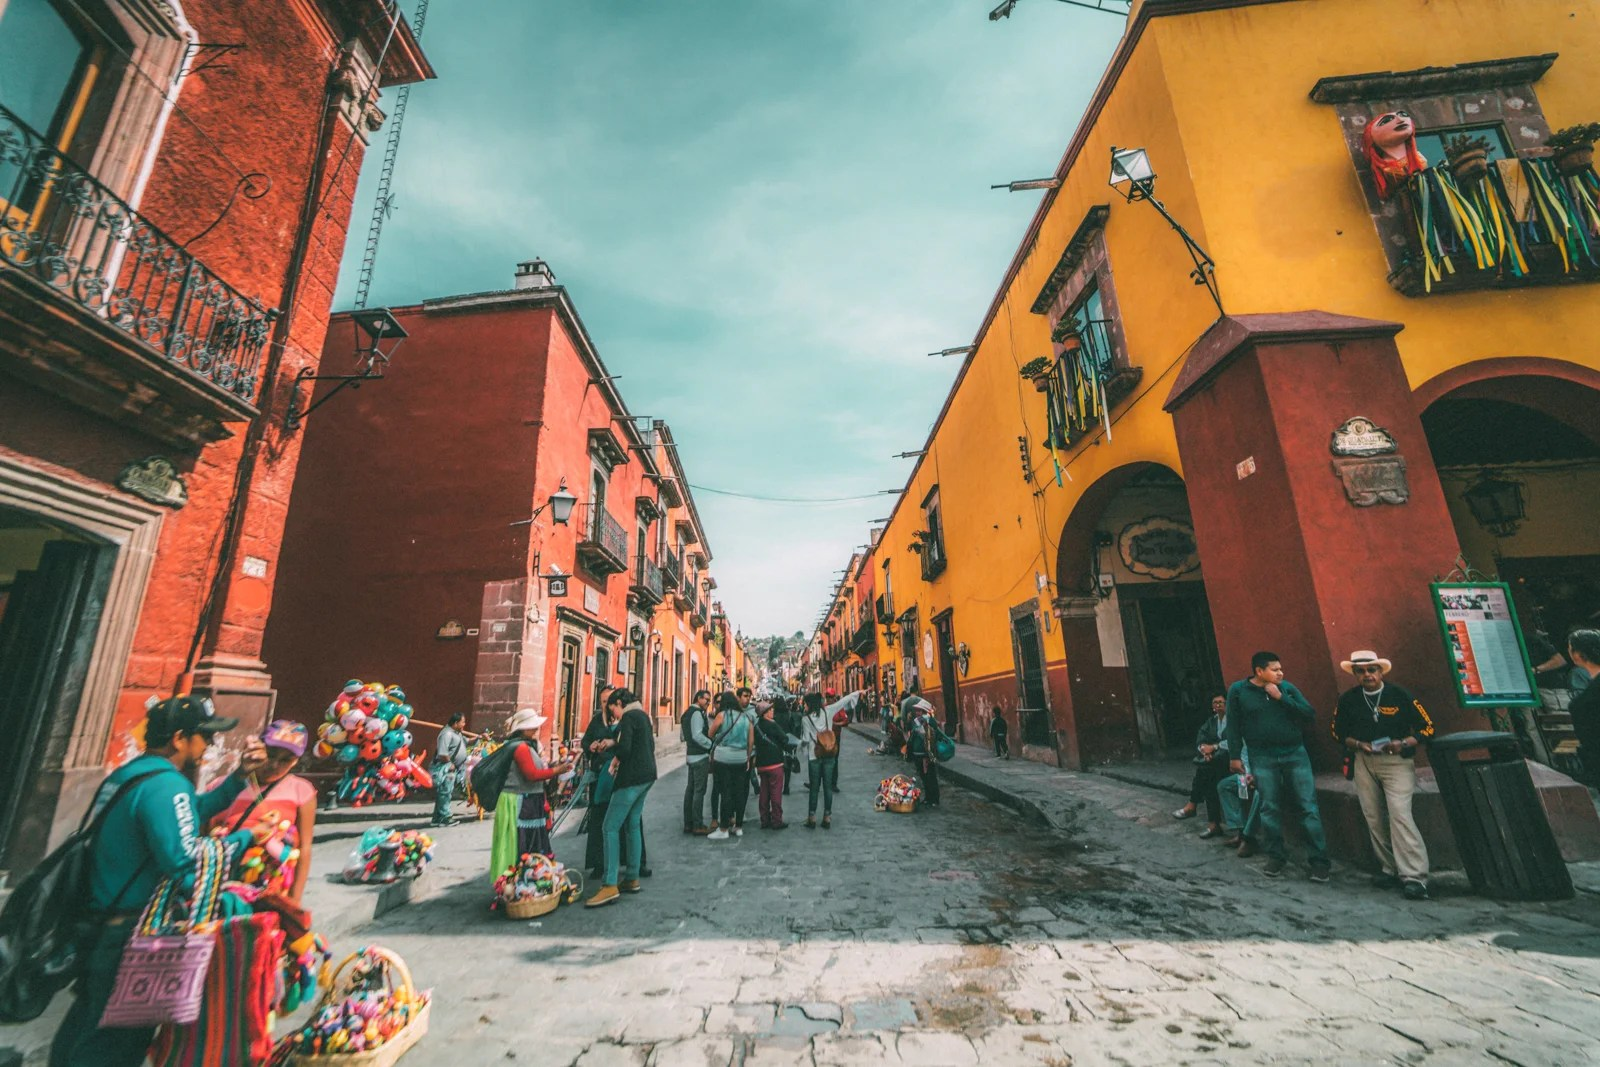 14 Mistakes Most Tourists Make in Mexico